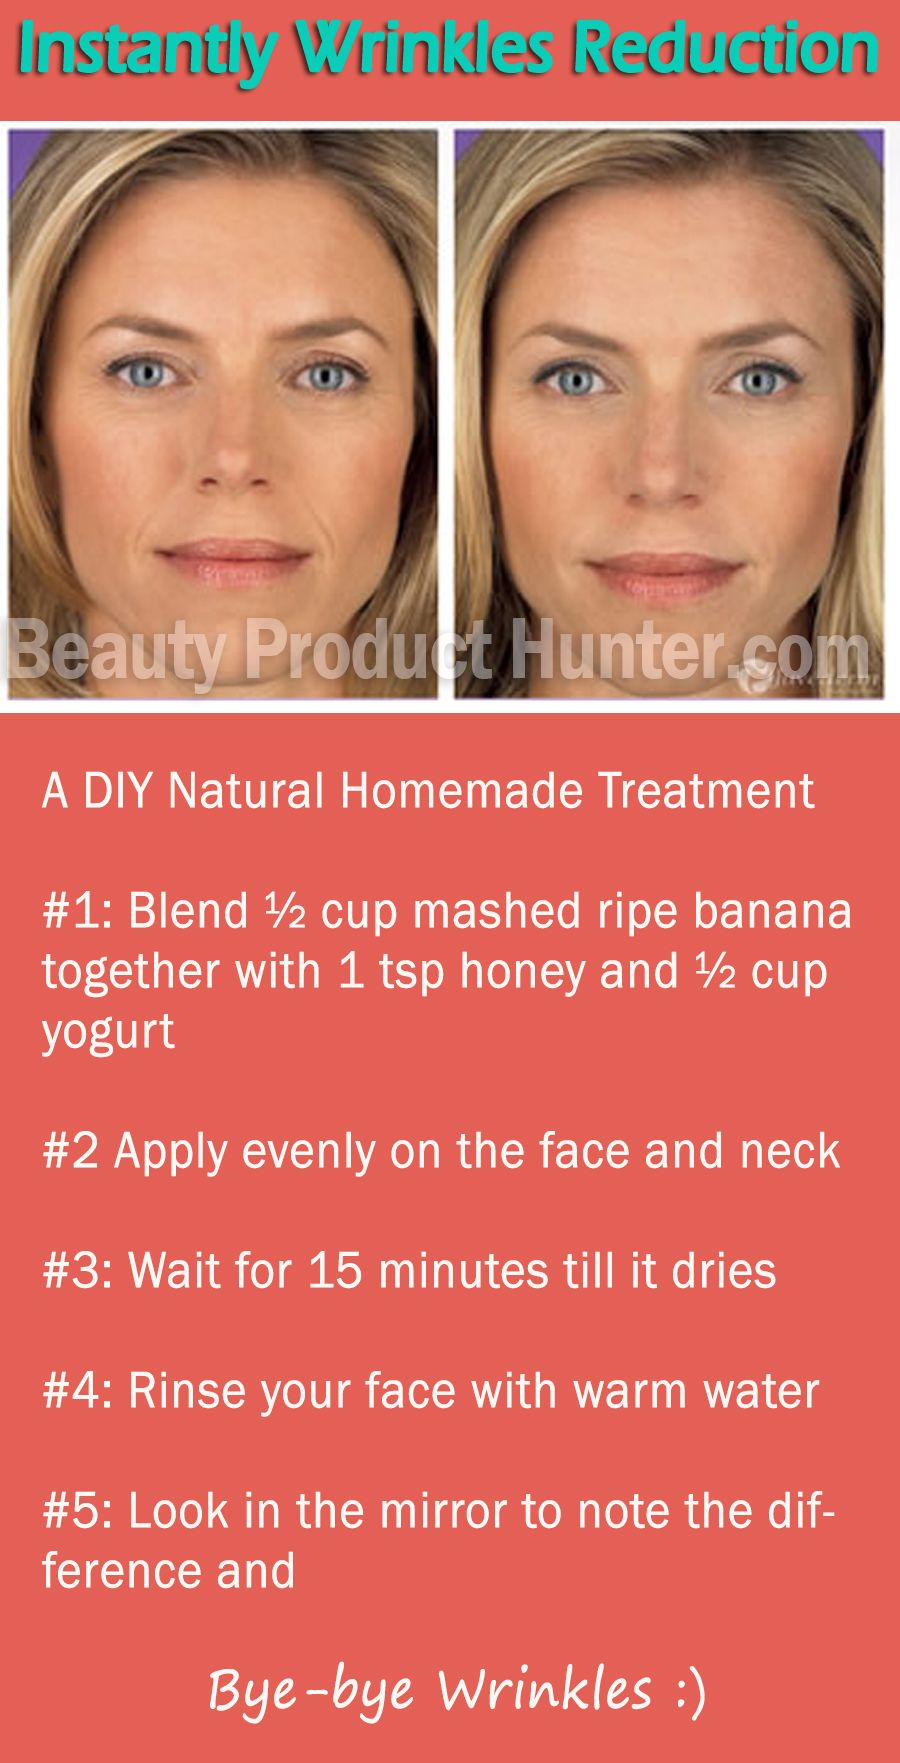 How To Instantly Lift Wrinkles With Natural Beauty Ingredients At